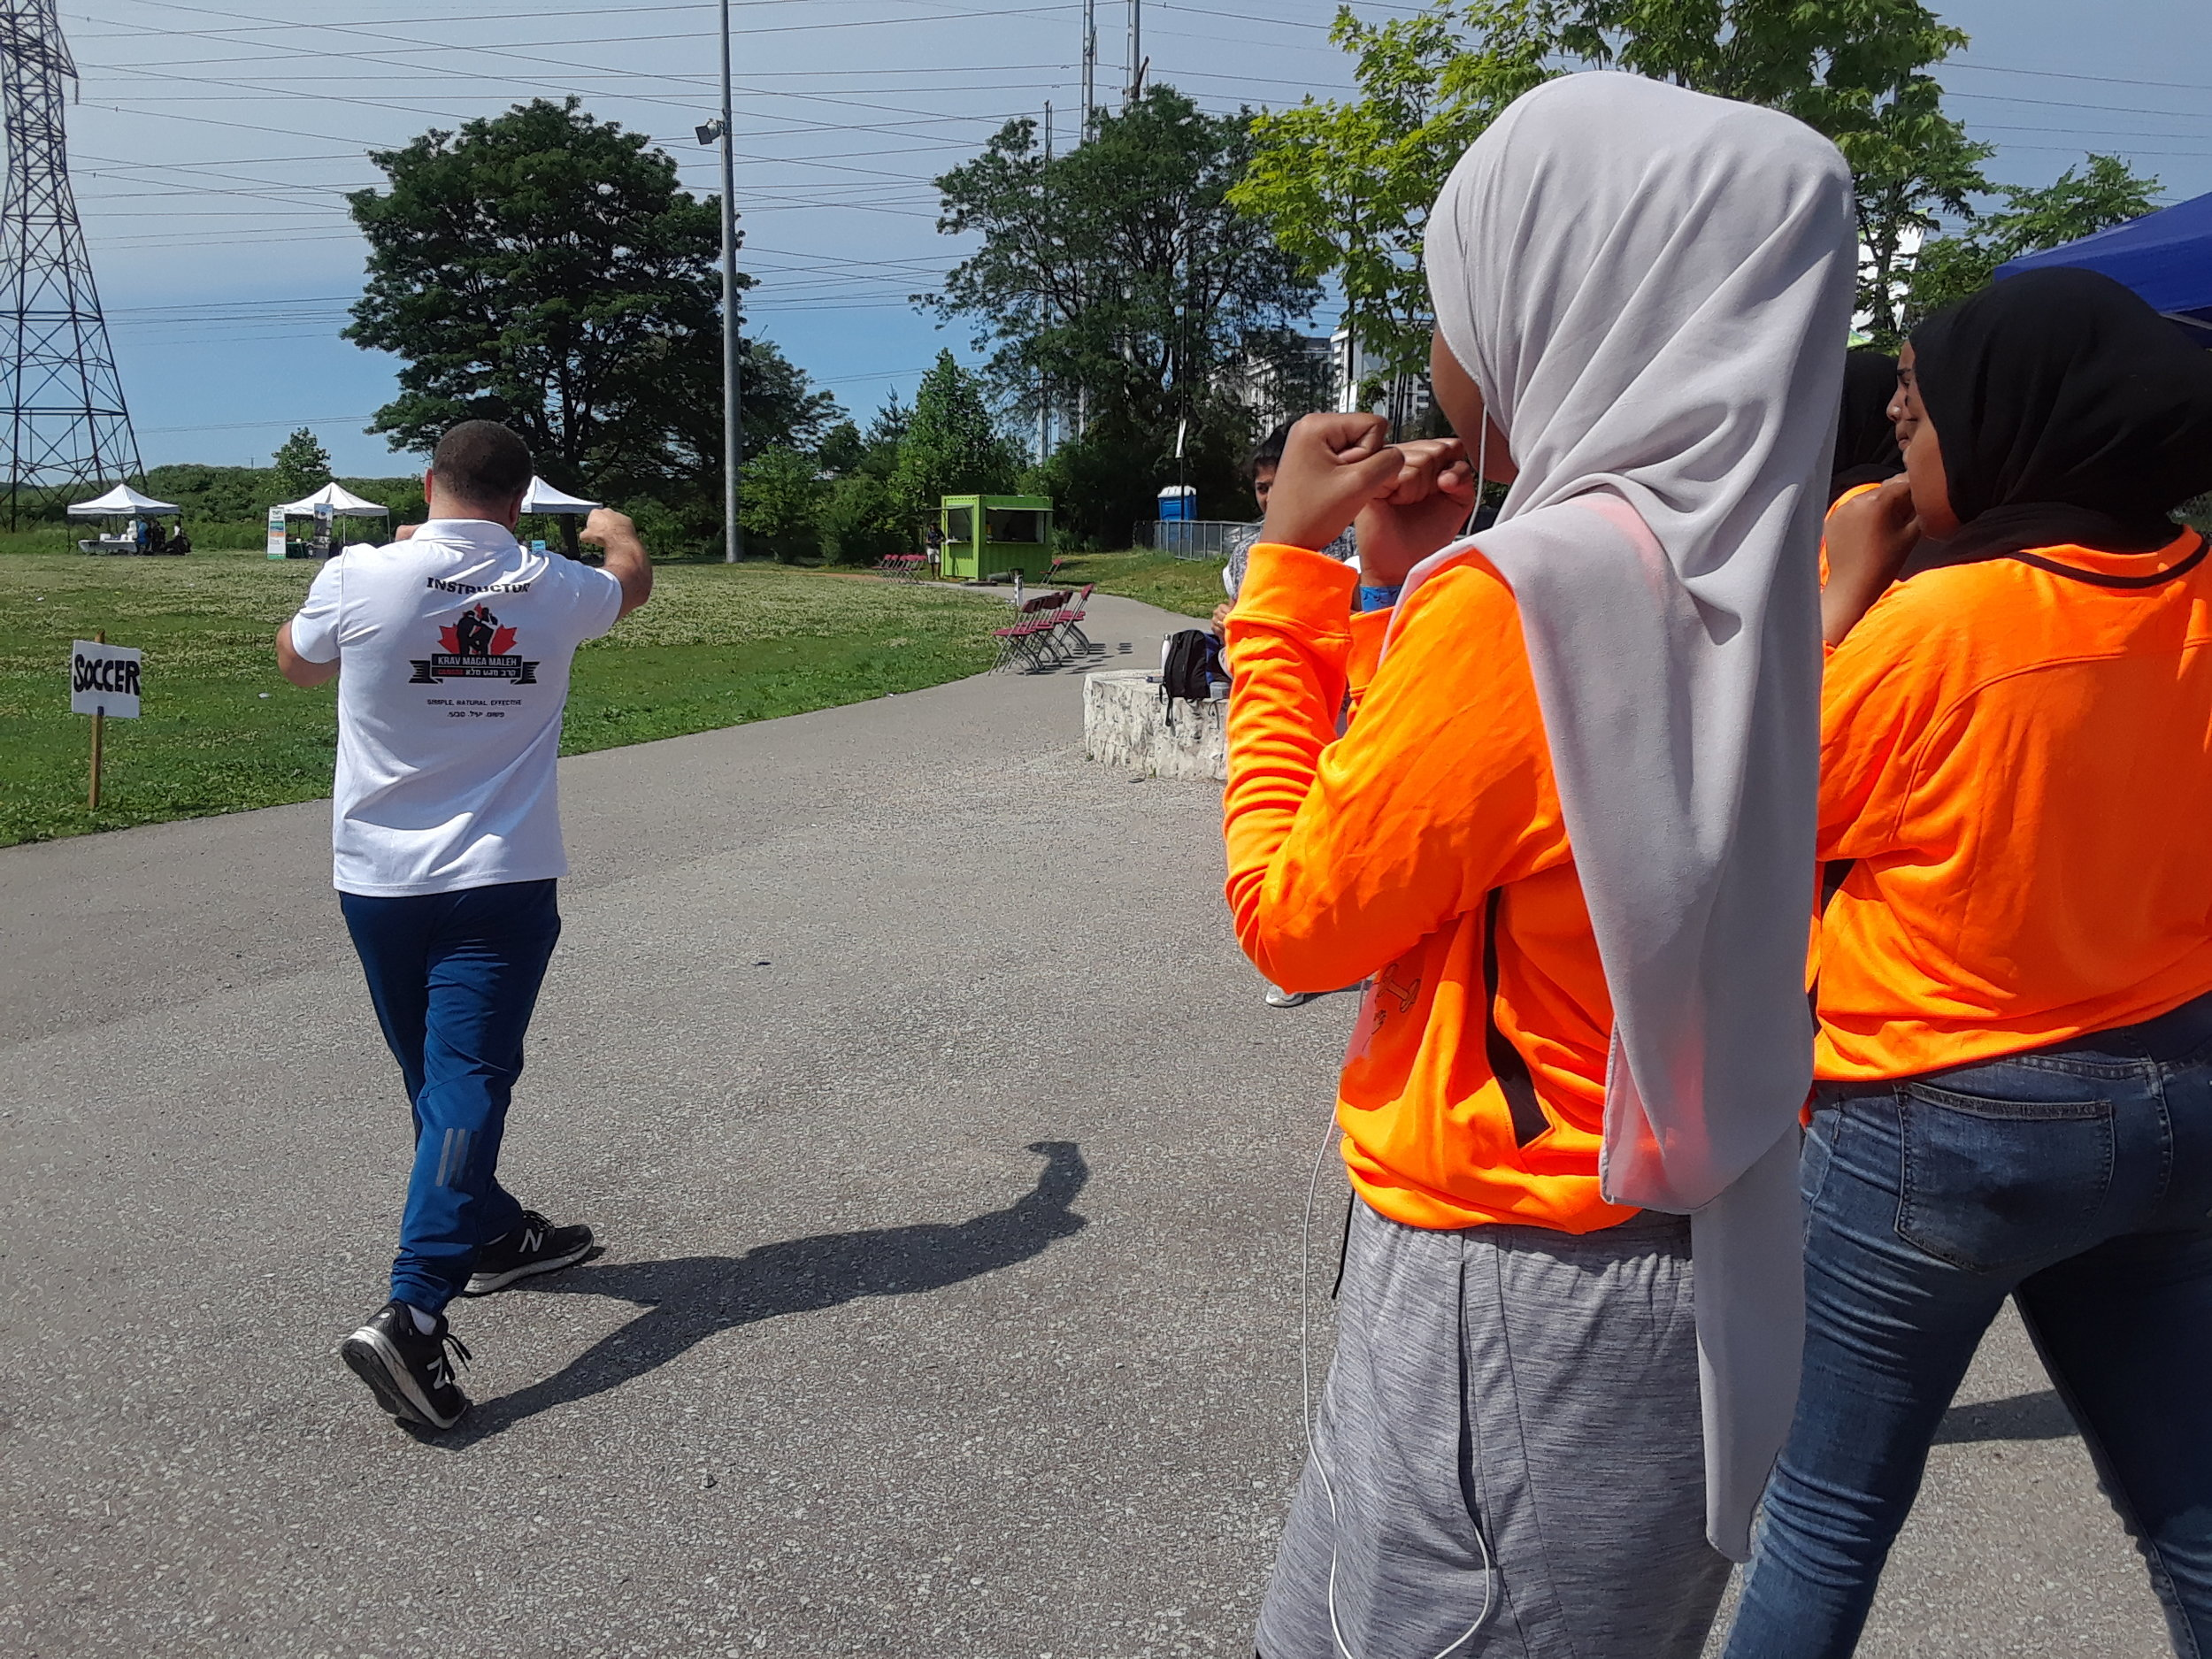 Dance and Self Defense Workshops at the 2019 Hijabi Ballers Sports Festival